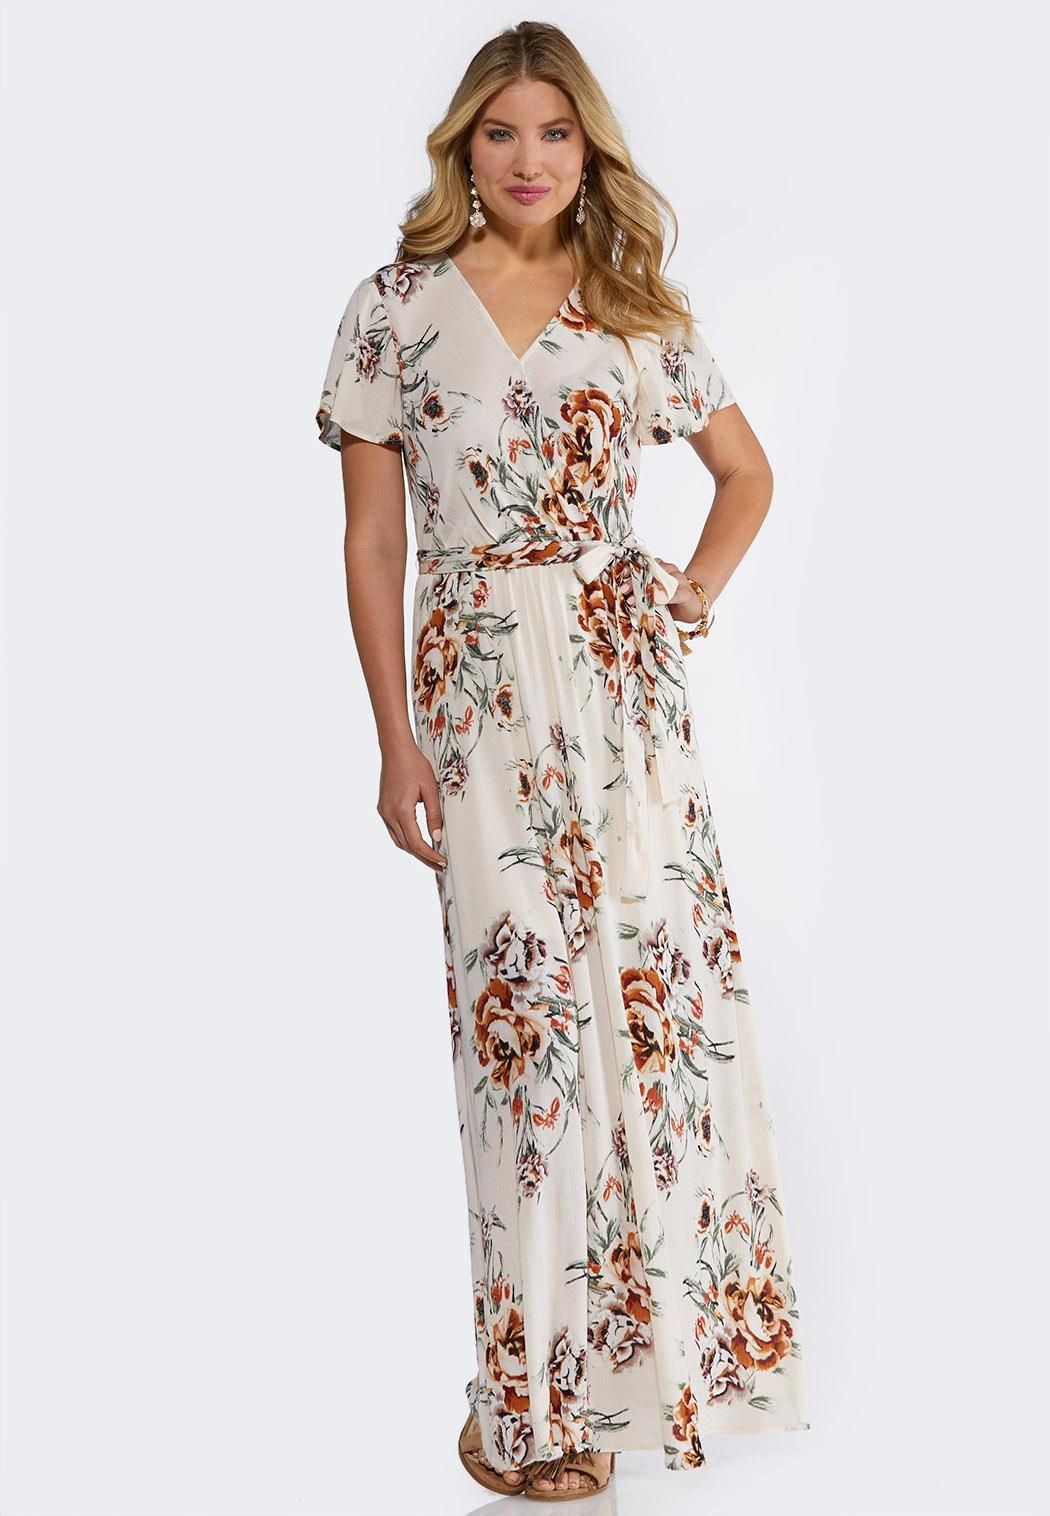 Plus Size Ivory Floral Maxi Dress Dresses Cato Fashions ...